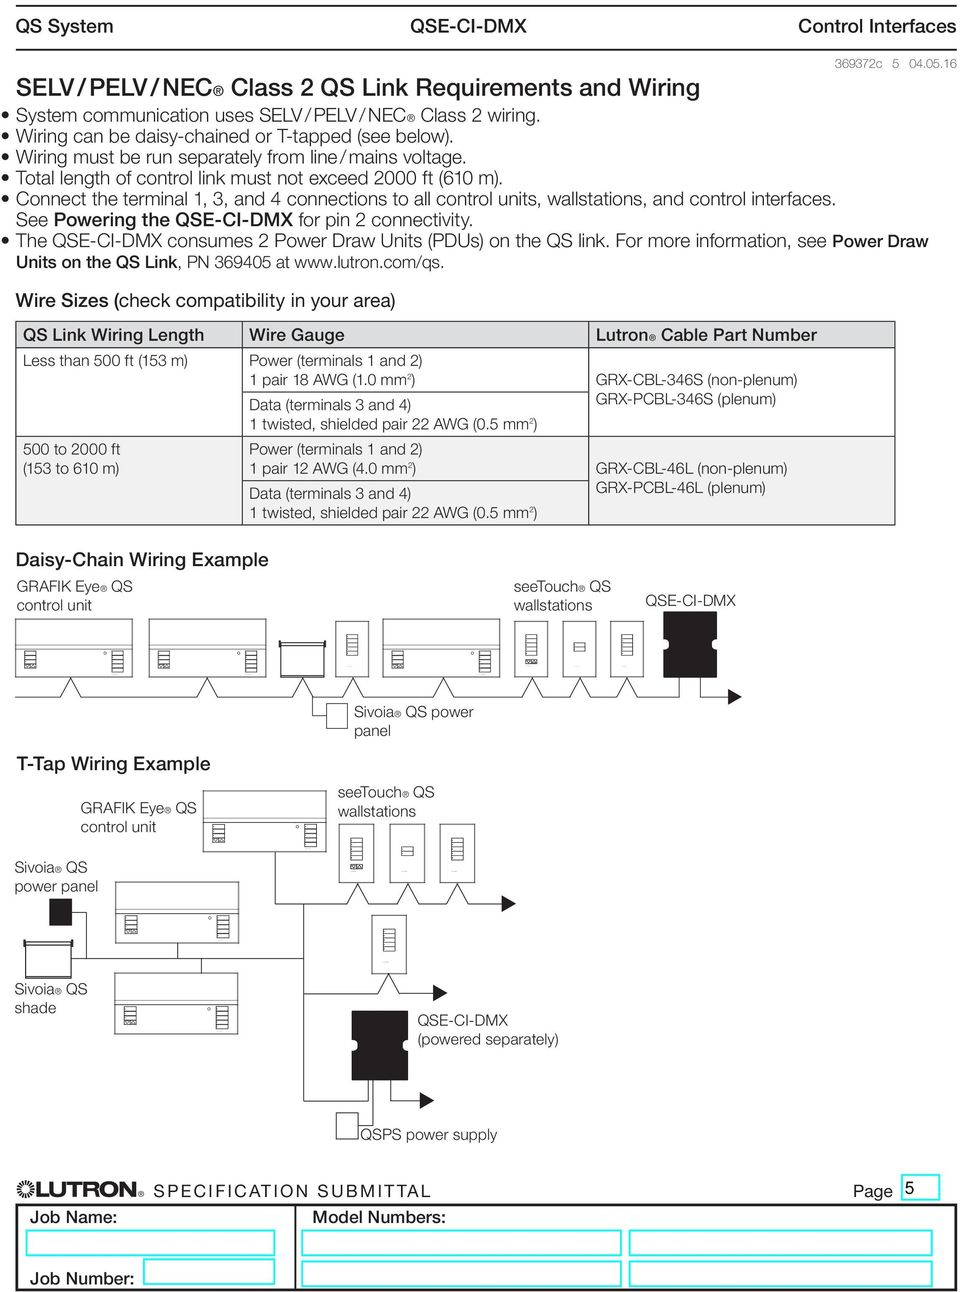 Qse Ci Dmx Control Interface Pdf Power Over Ethernet Wiring Diagram Note The Connect Terminal 1 3 And 4 Connections To All Units Wallstations